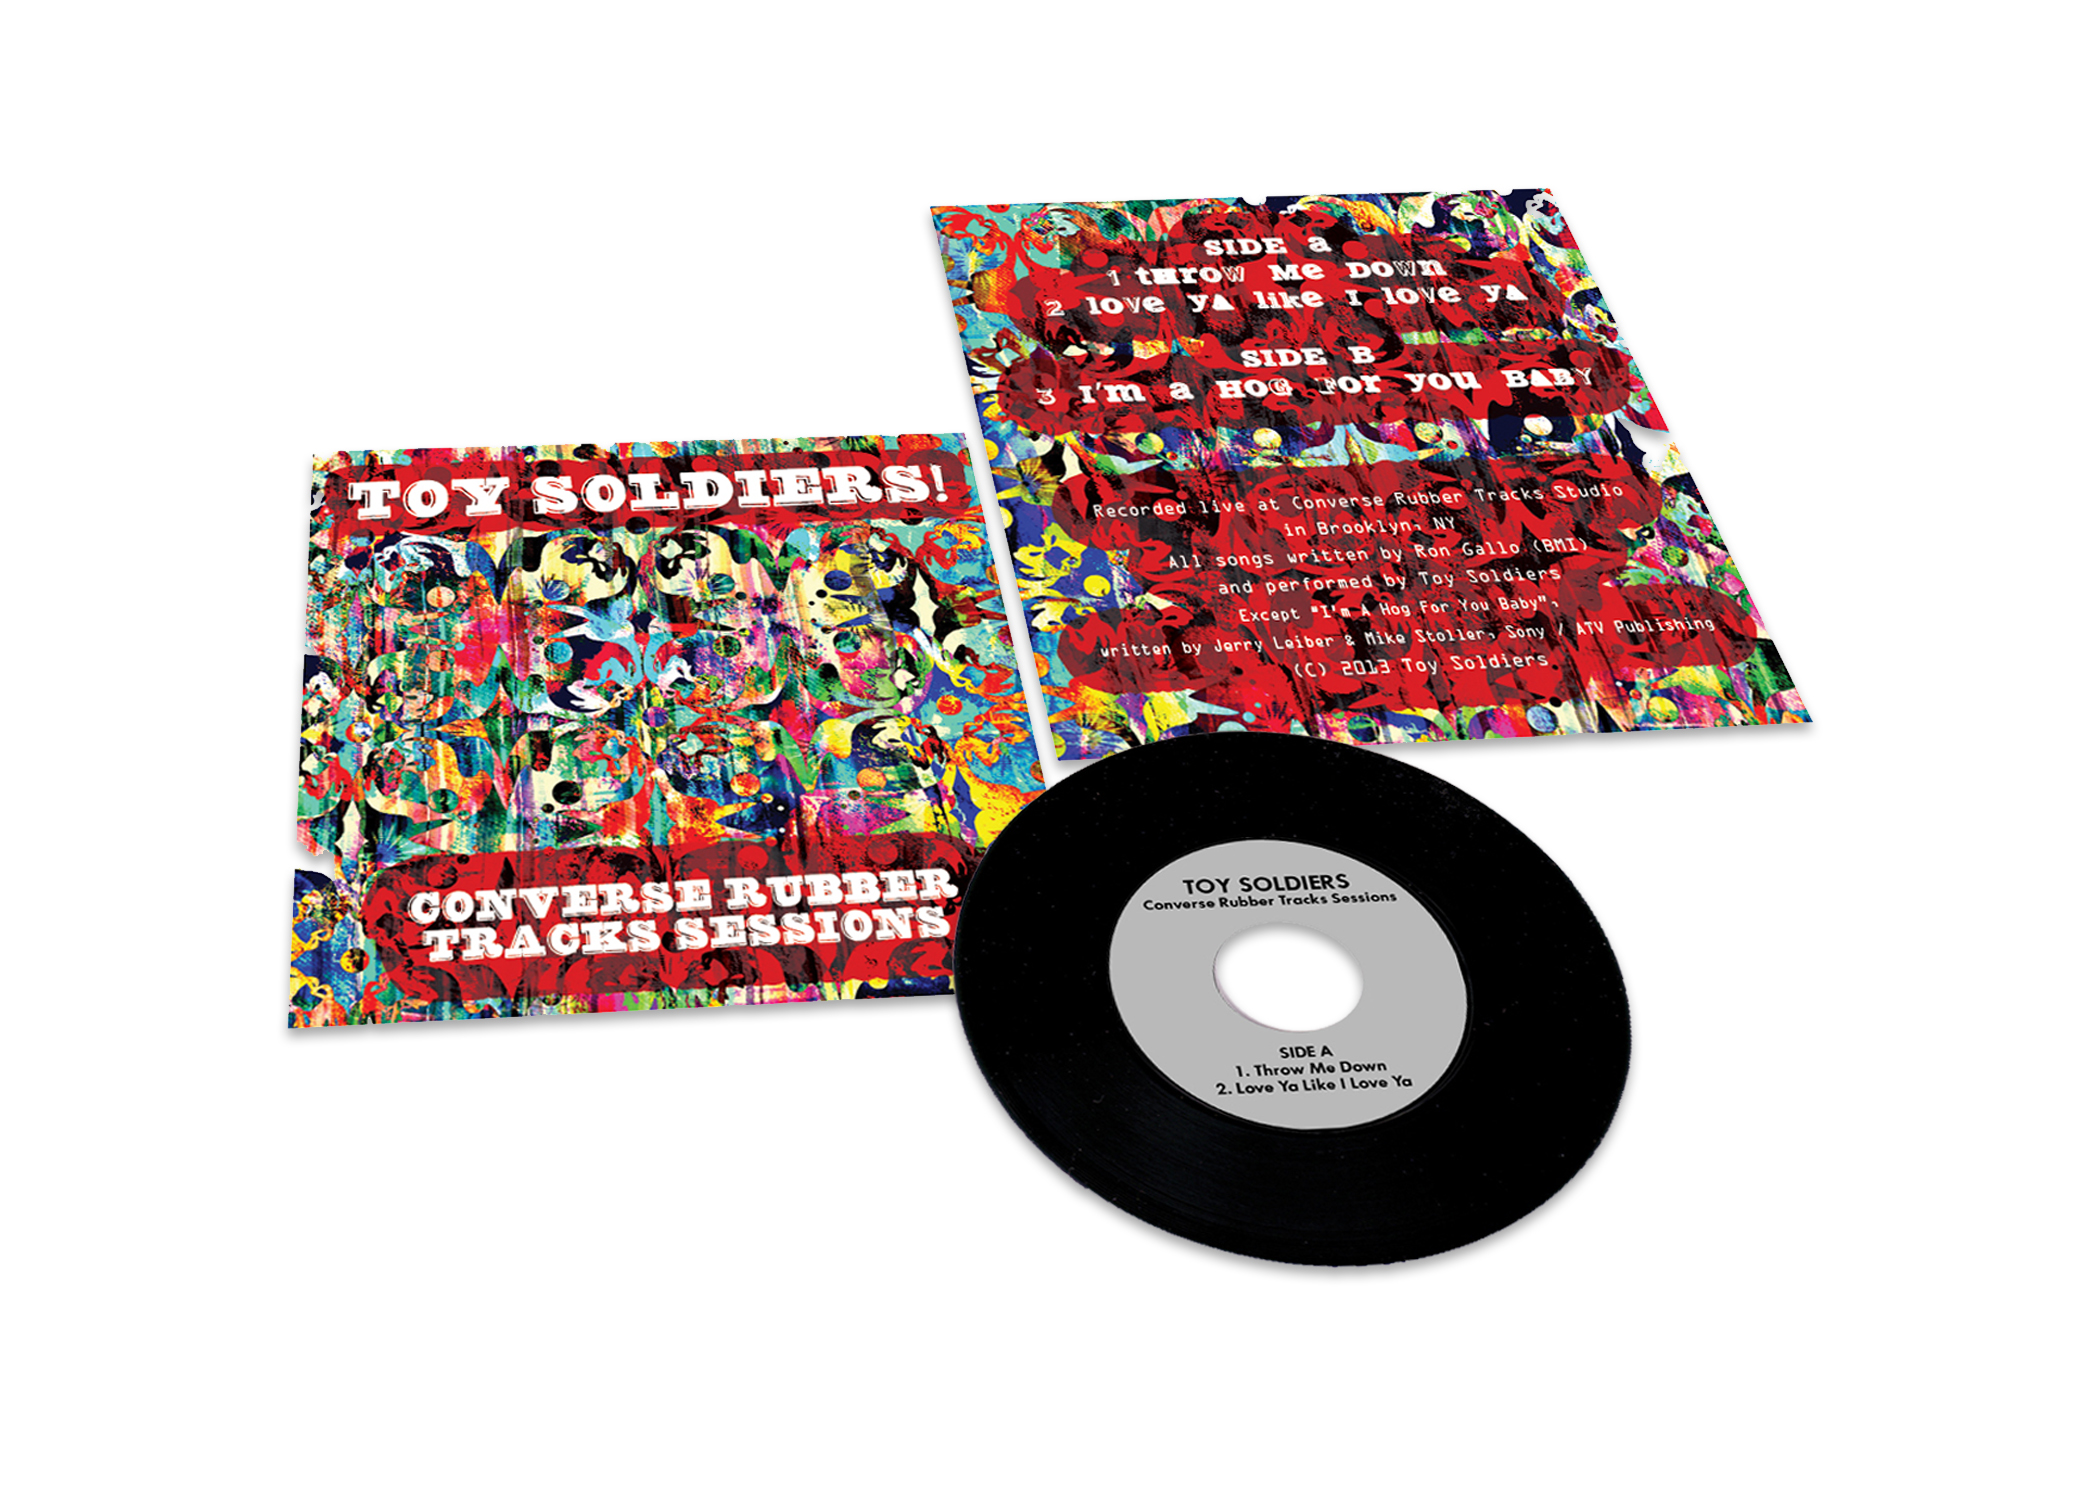 "Toy Soldiers Converse Rubber Tracks Sessions 7"" Vinyl Package 